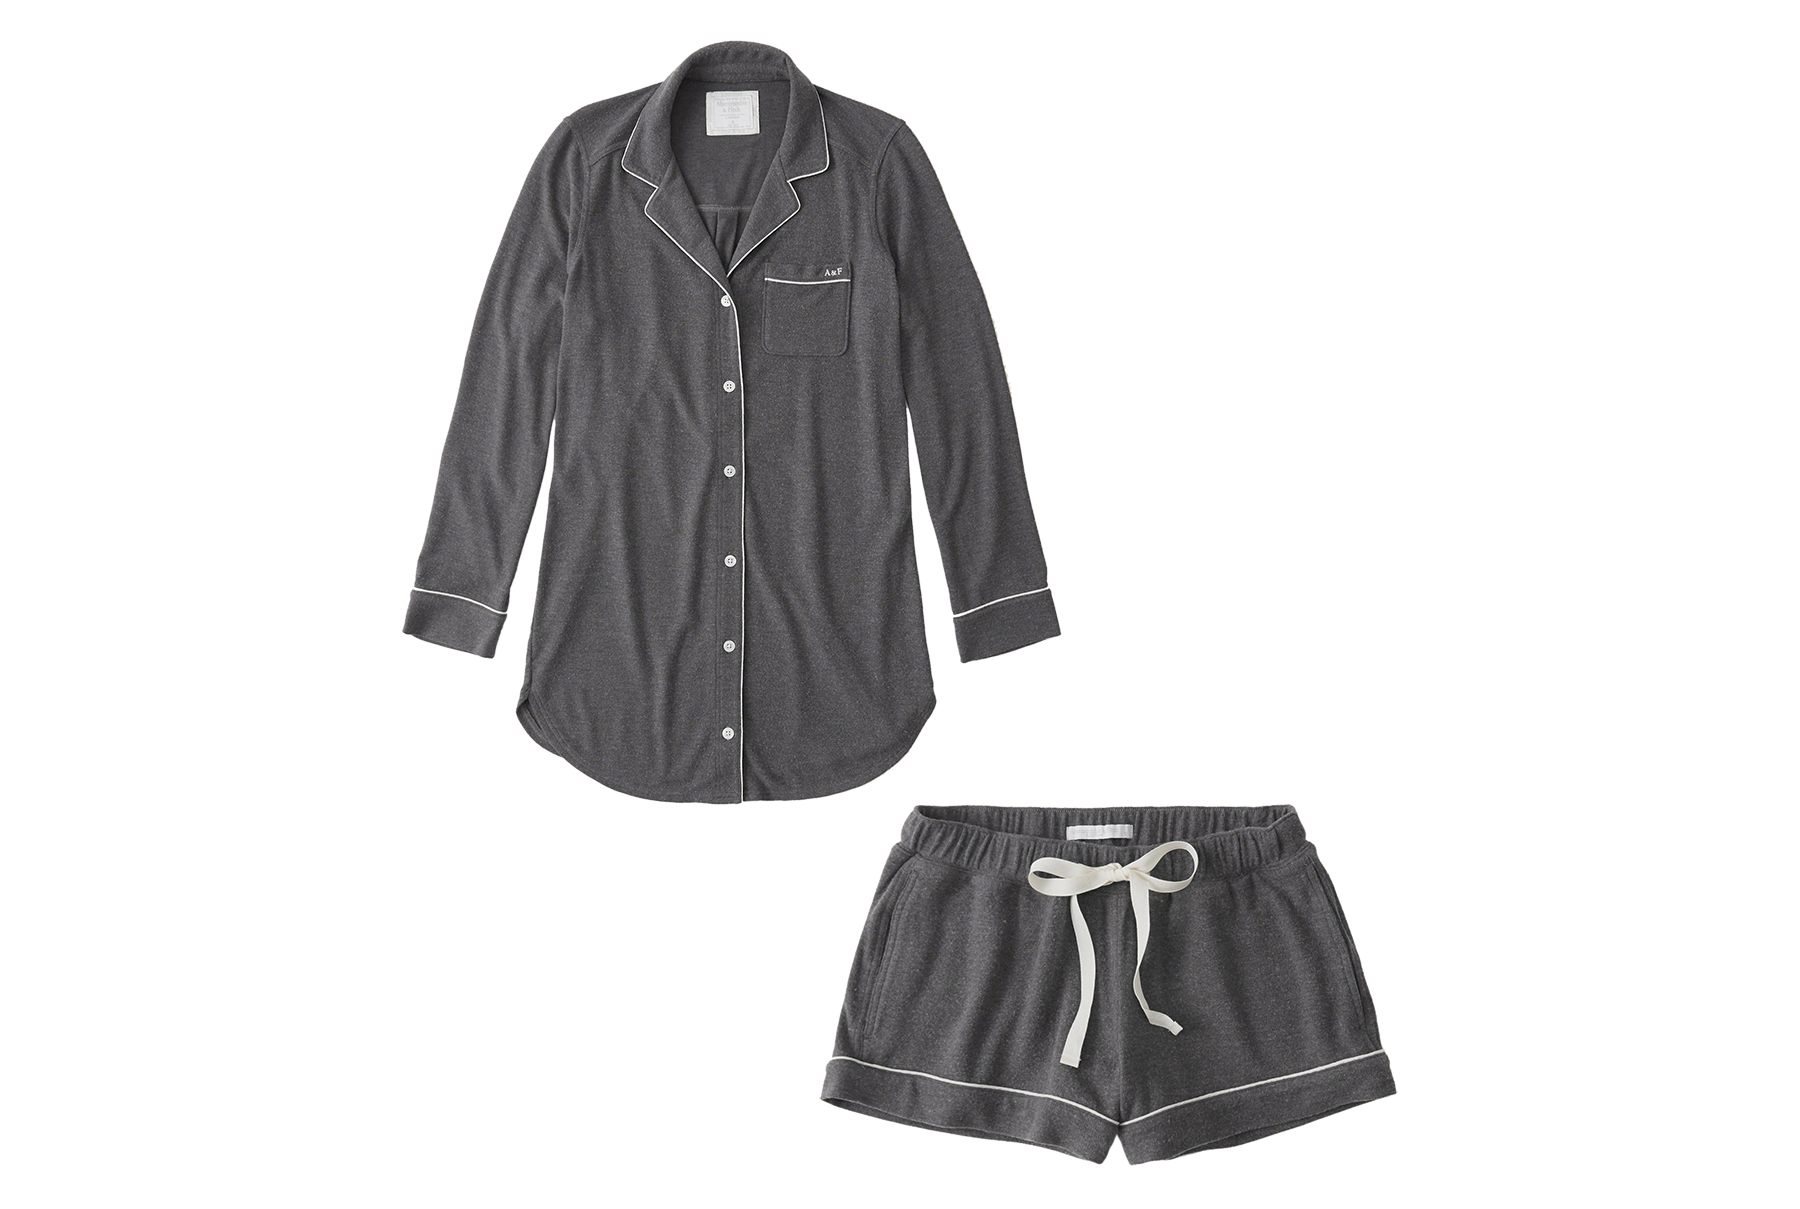 Abercrombie & Fitch Menswear Knit Shirt and Shorts